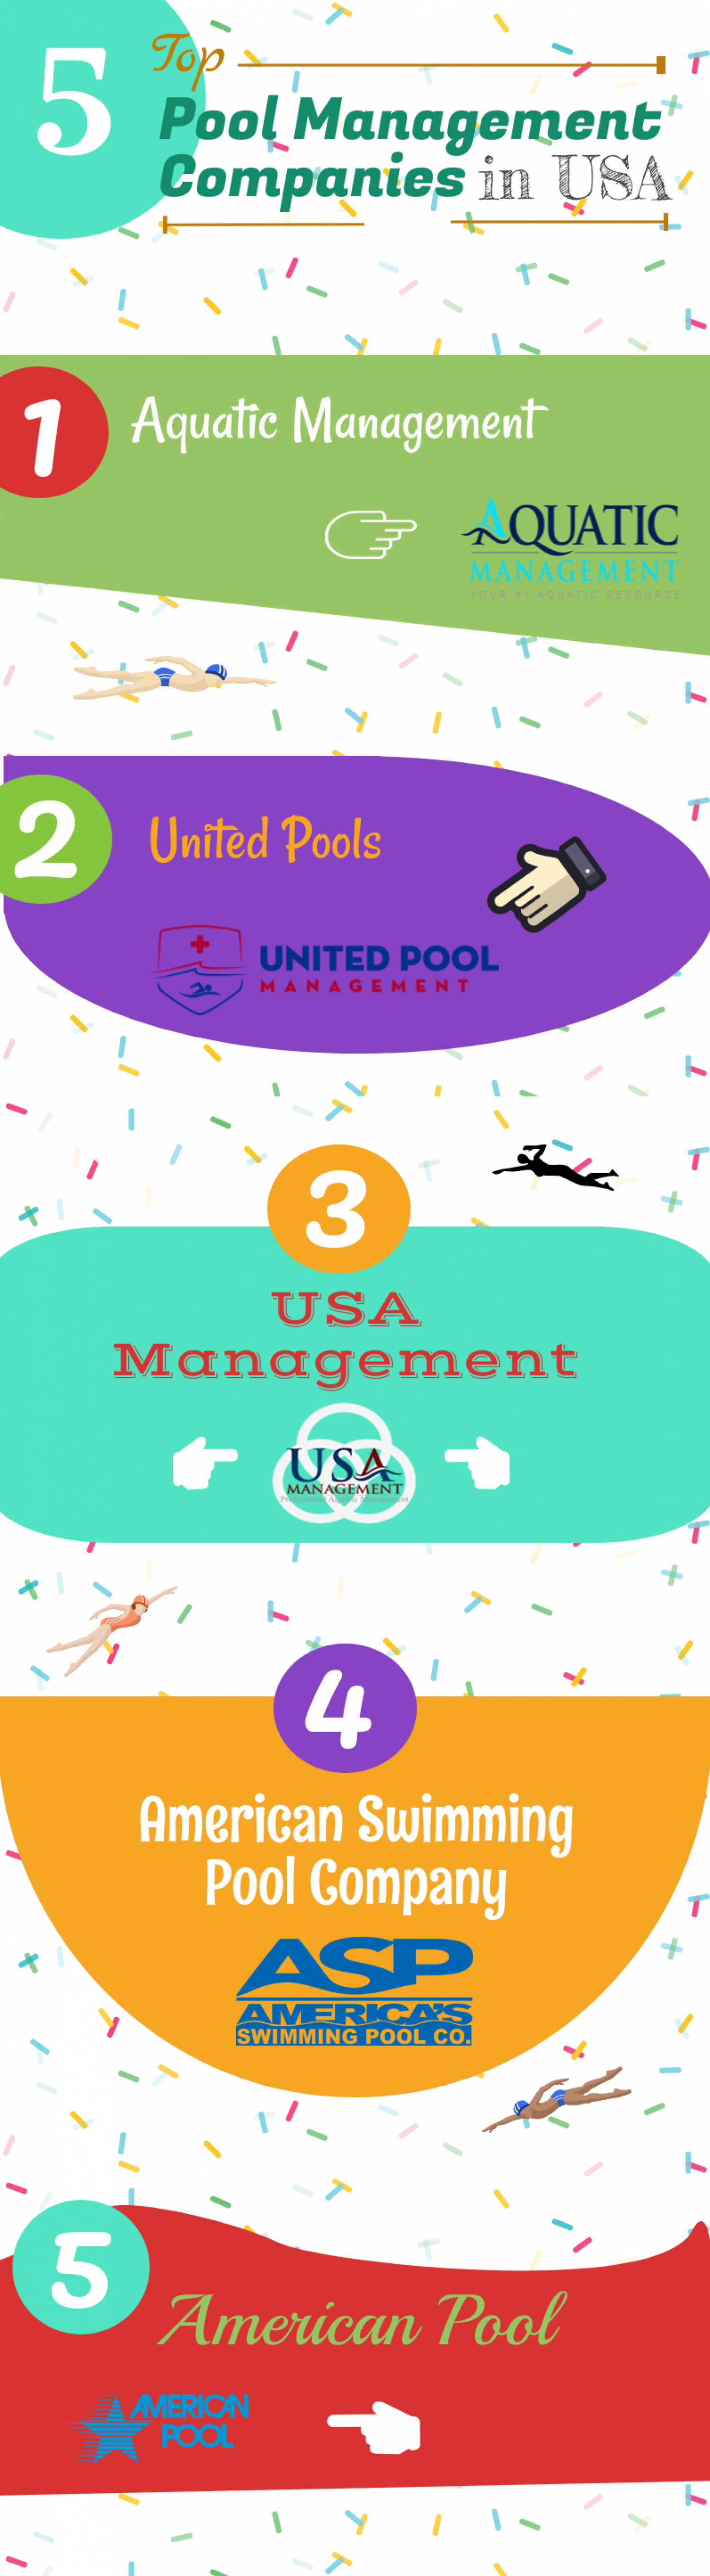 Top 5 Pool Management Companies In USA Infographic